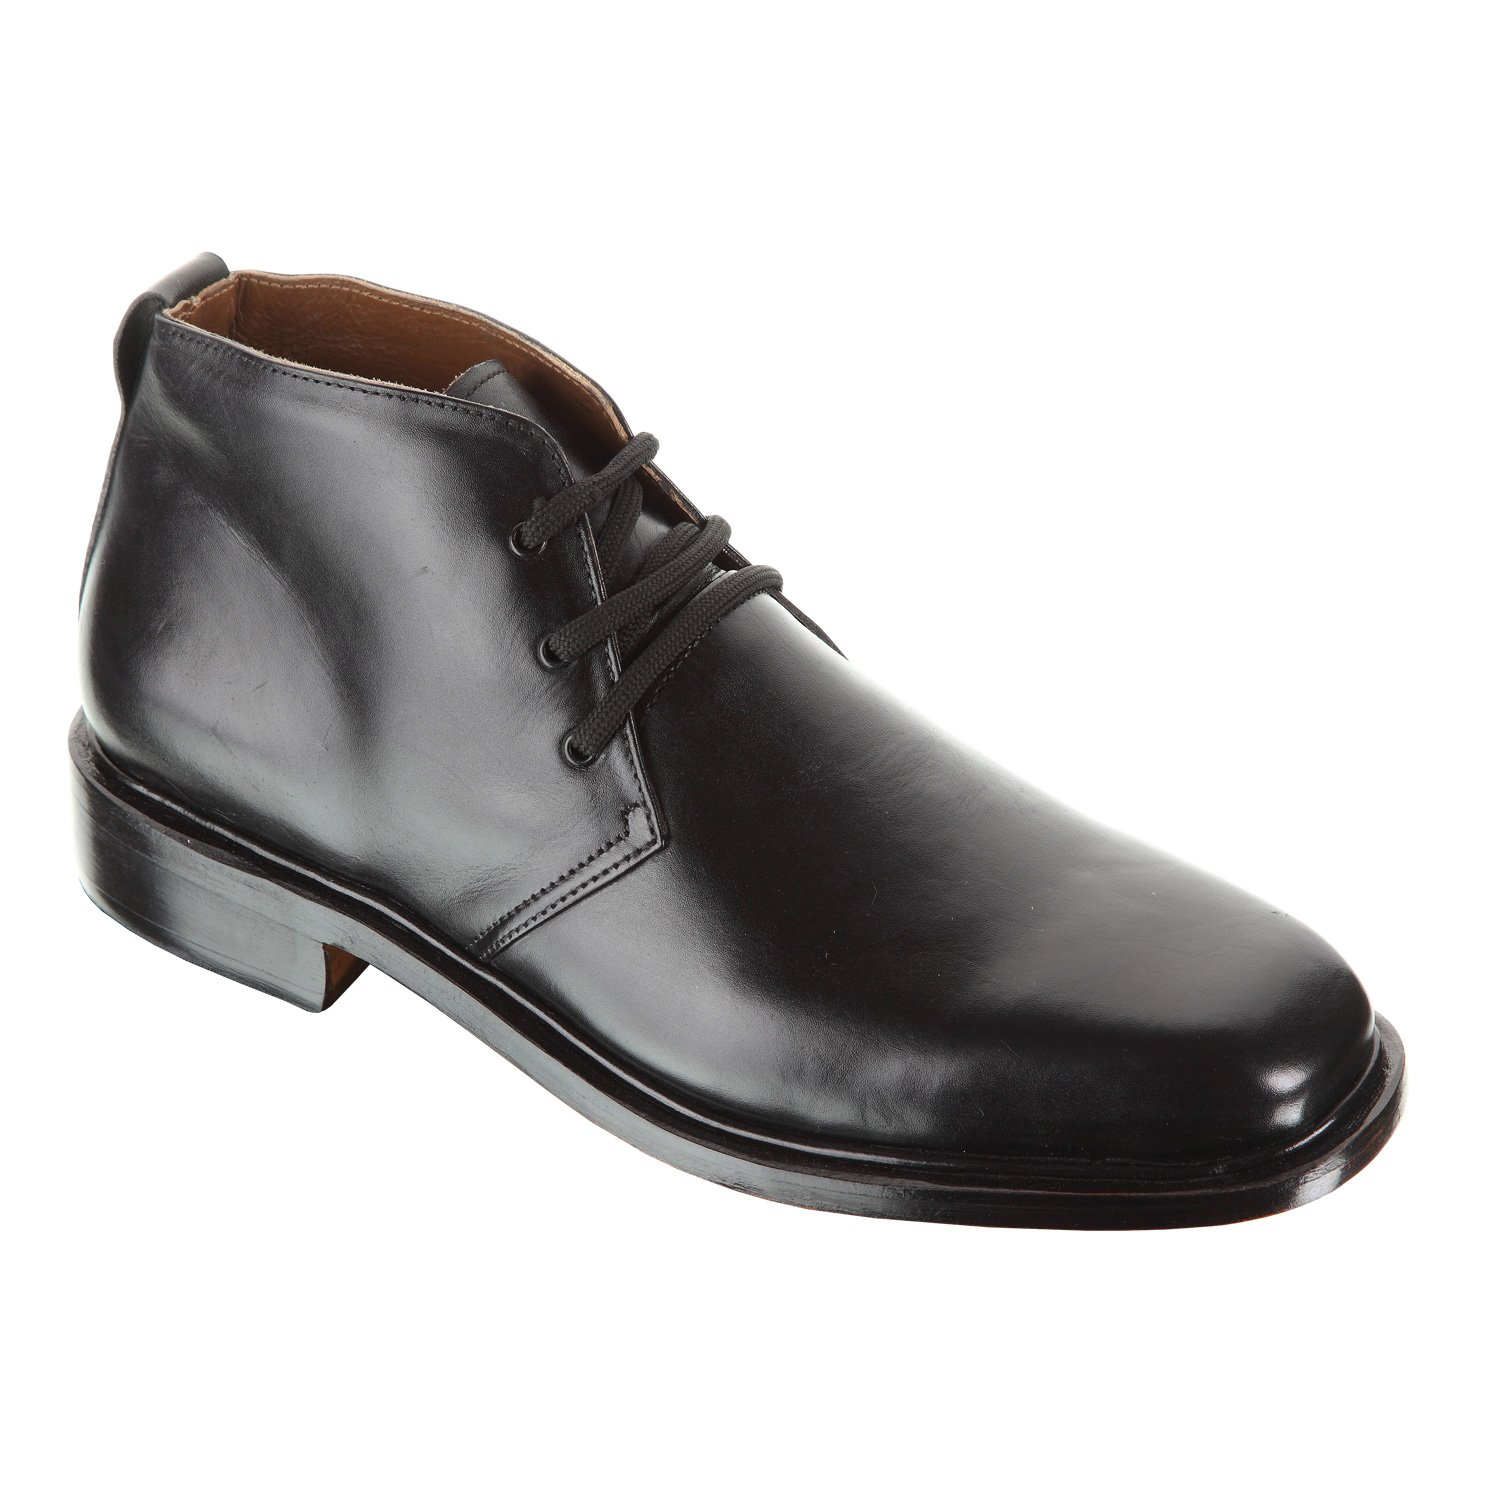 Handmade Damen Frost Drake Square toe design high quality leather Mens Shoes, Color Black, Size US12